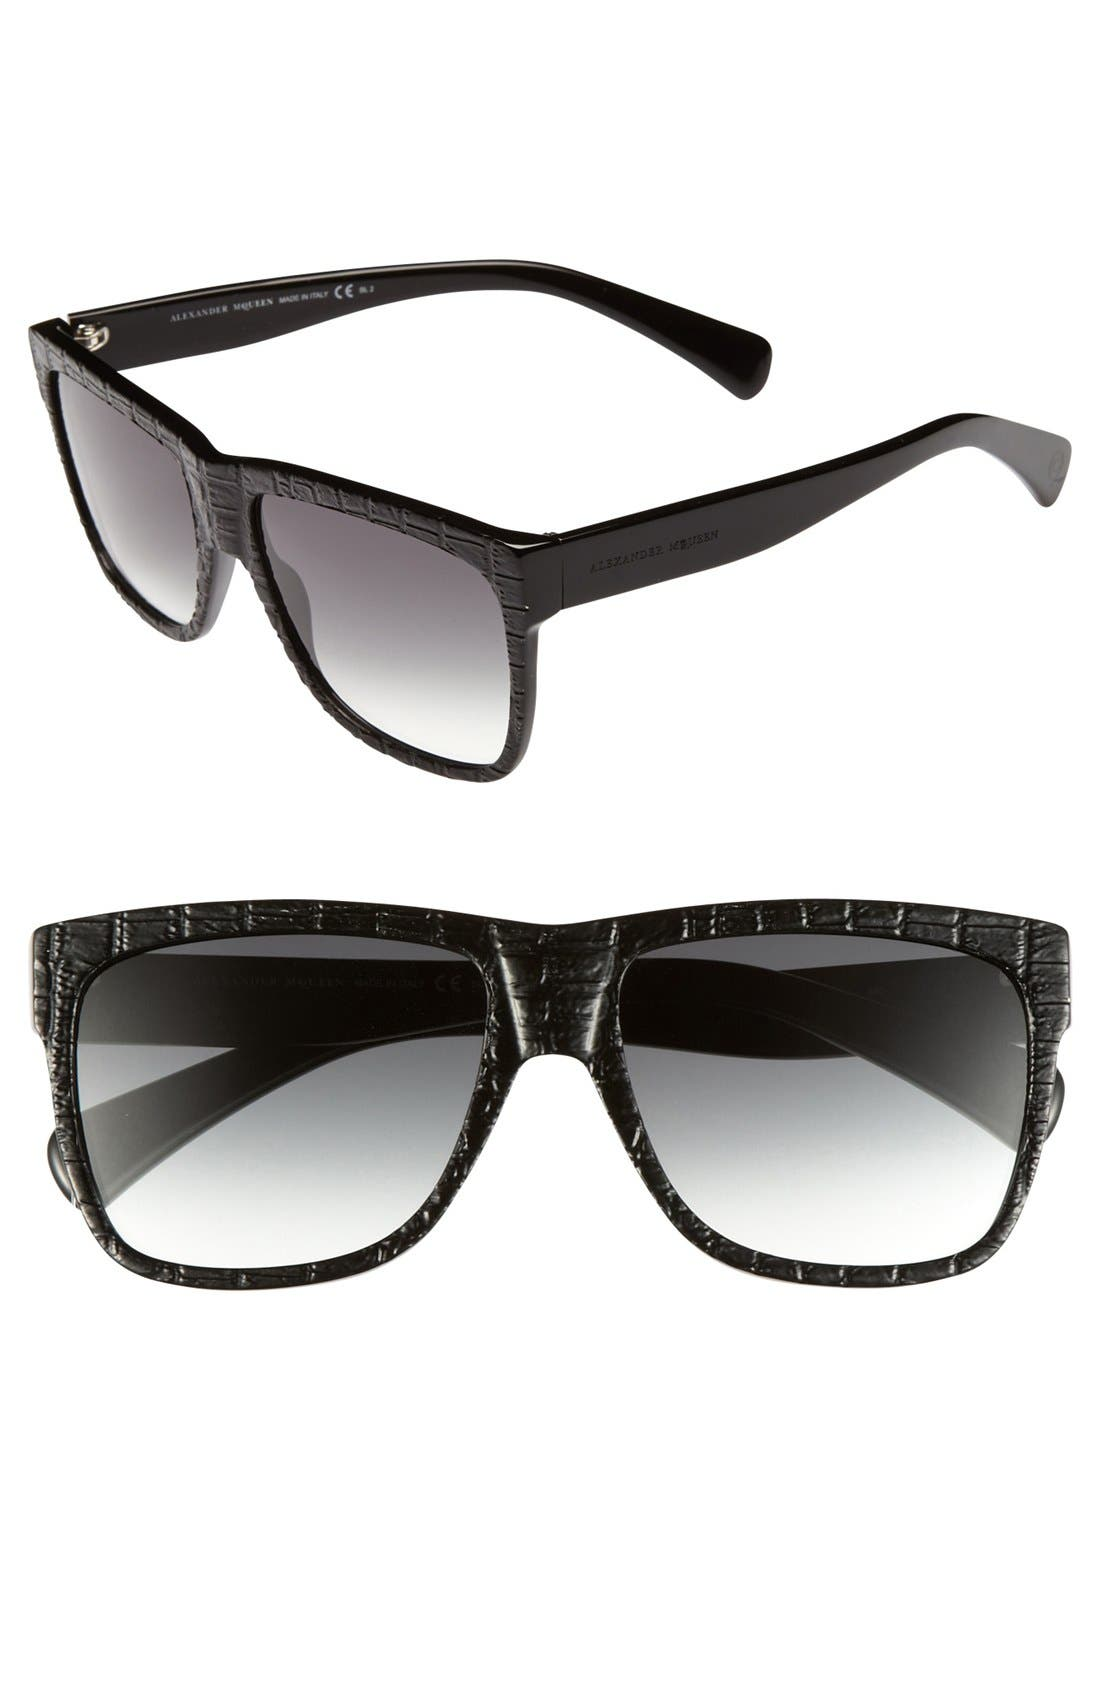 Alternate Image 1 Selected - Alexander McQueen 55mm Retro Sunglasses